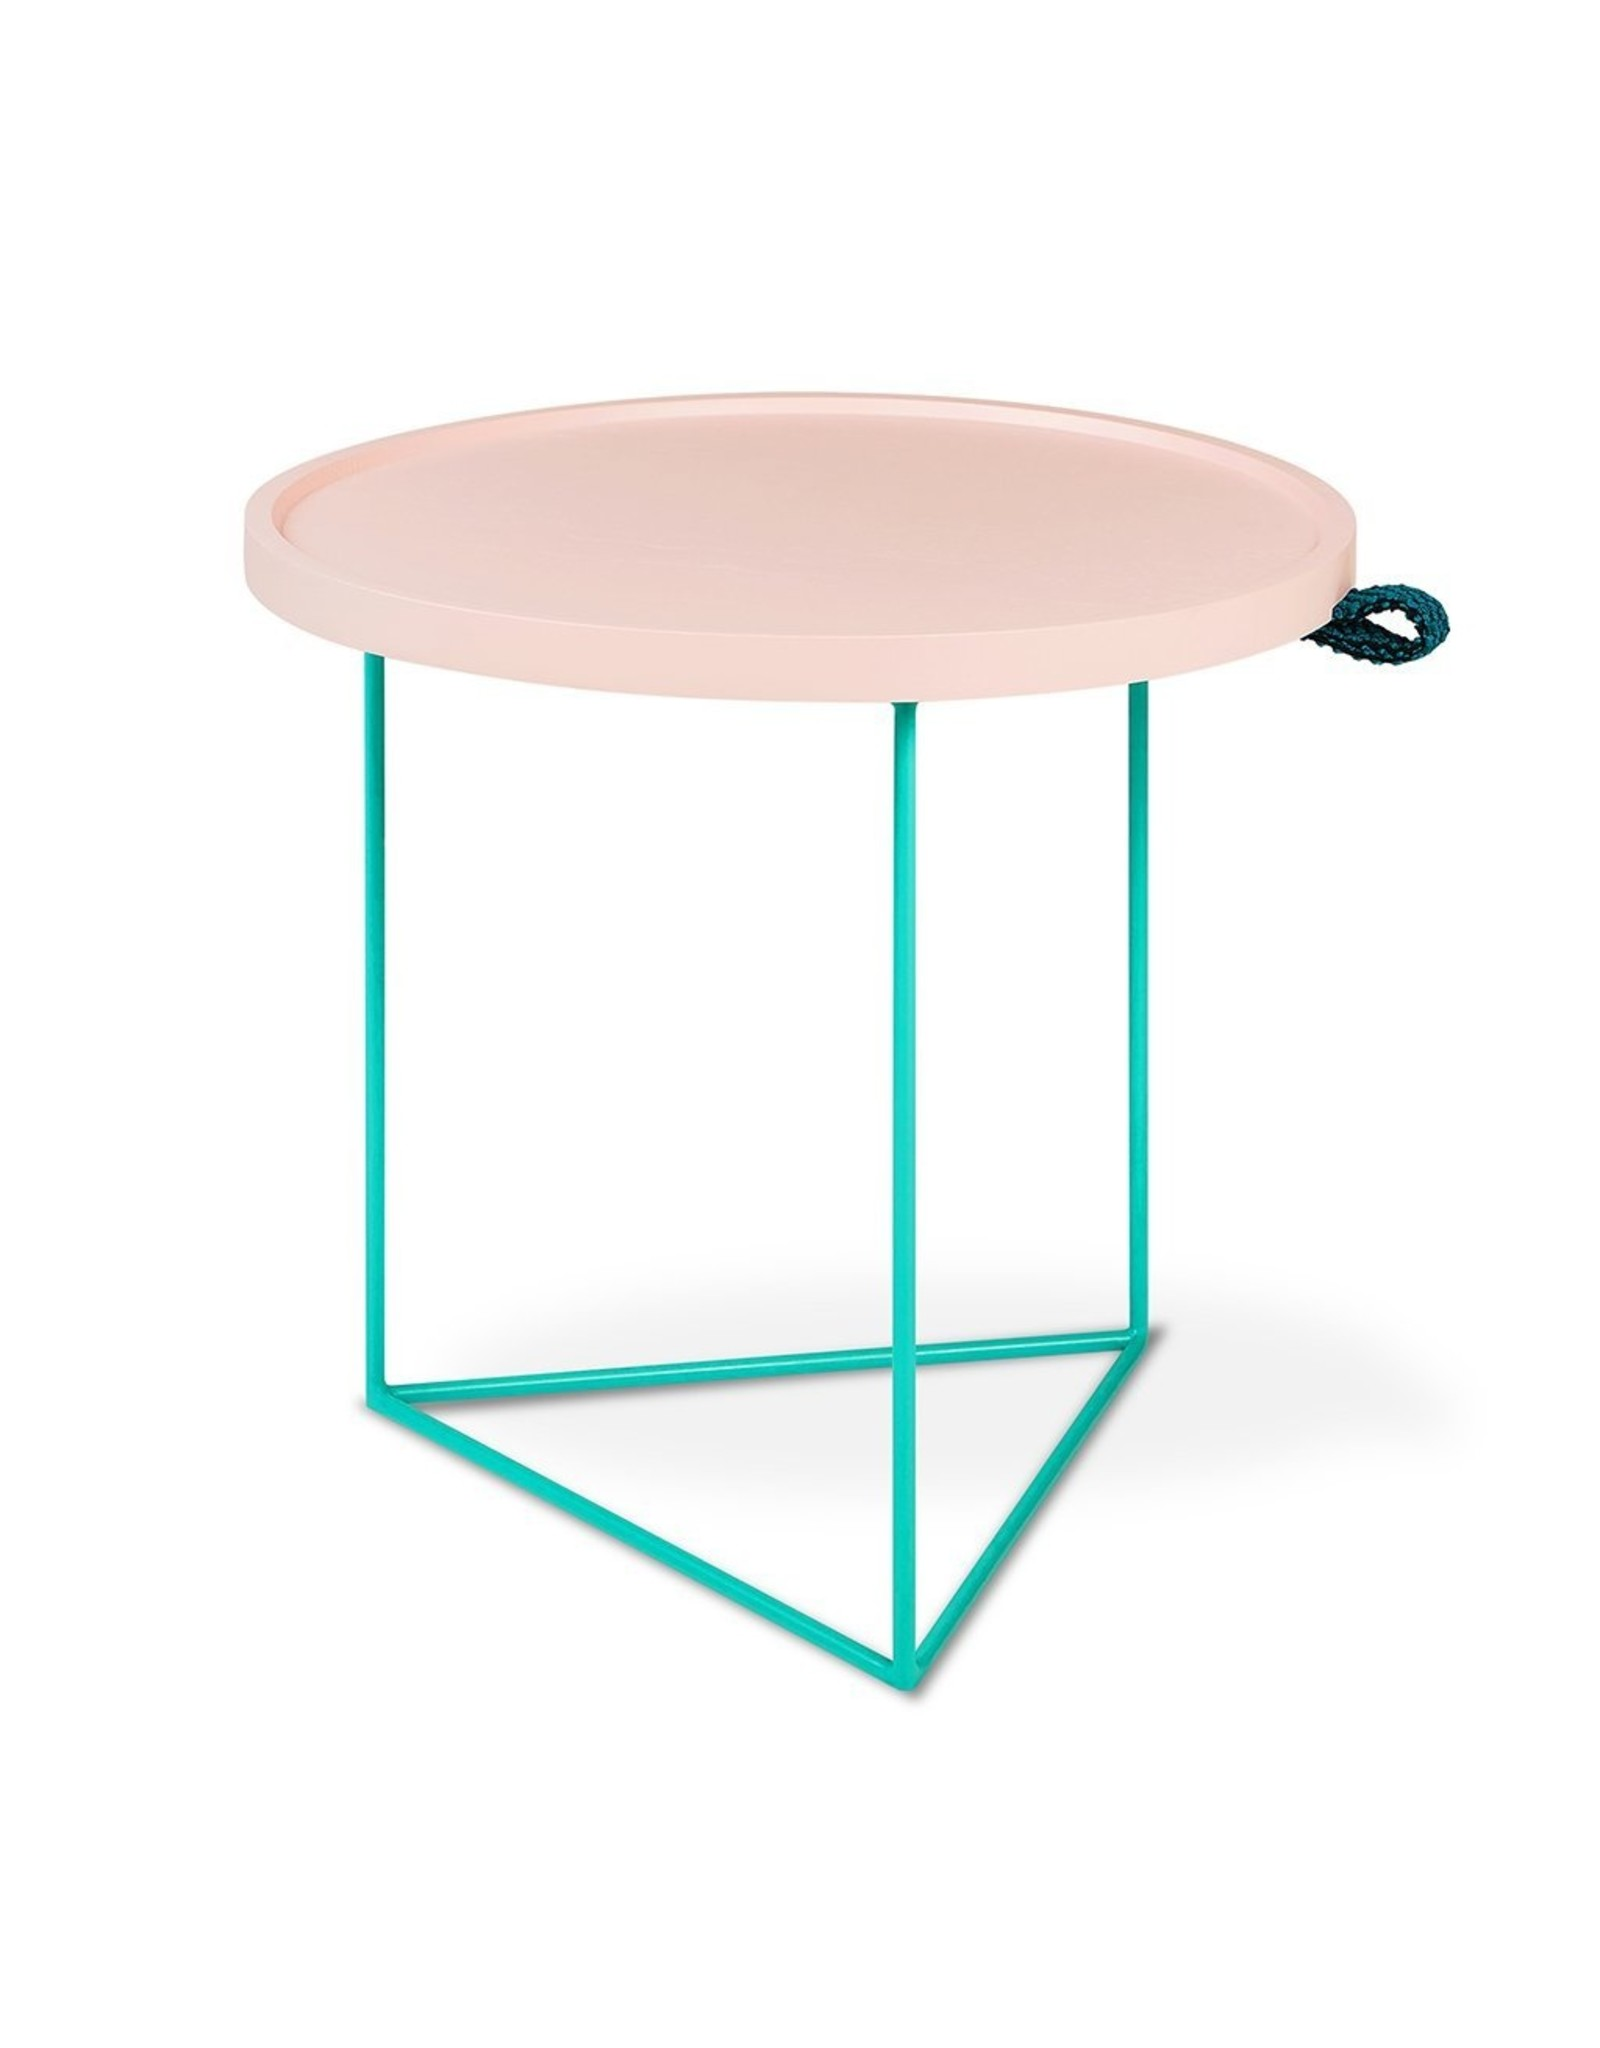 Gus* Modern Porter End Table Gus* x LUUM